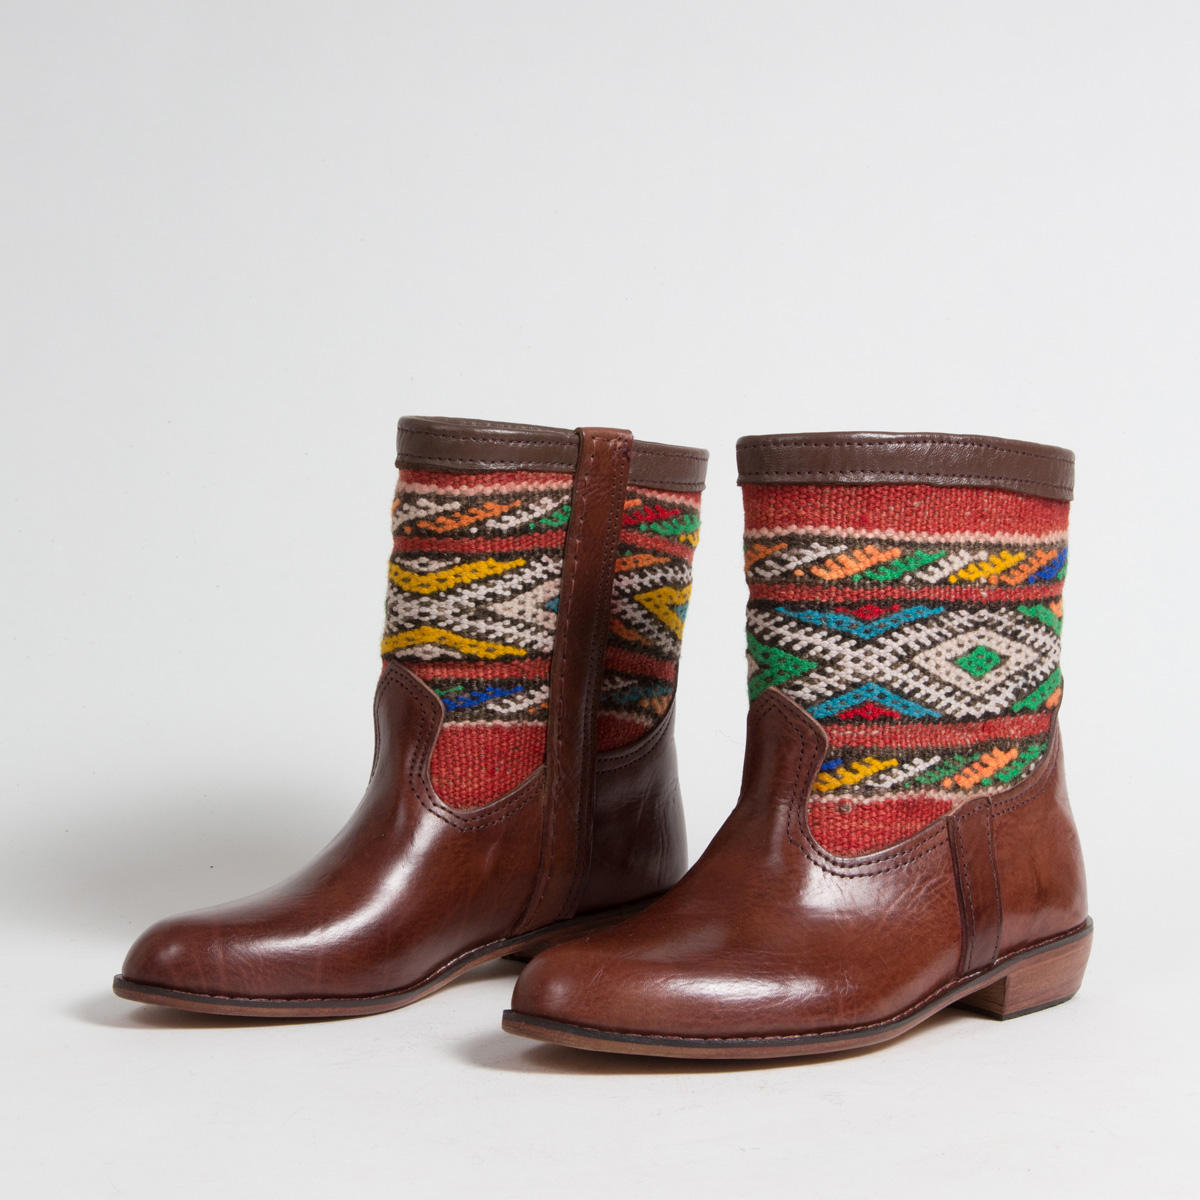 Bottines Kilim cuir mababouche artisanales (Réf. MCM3-38)